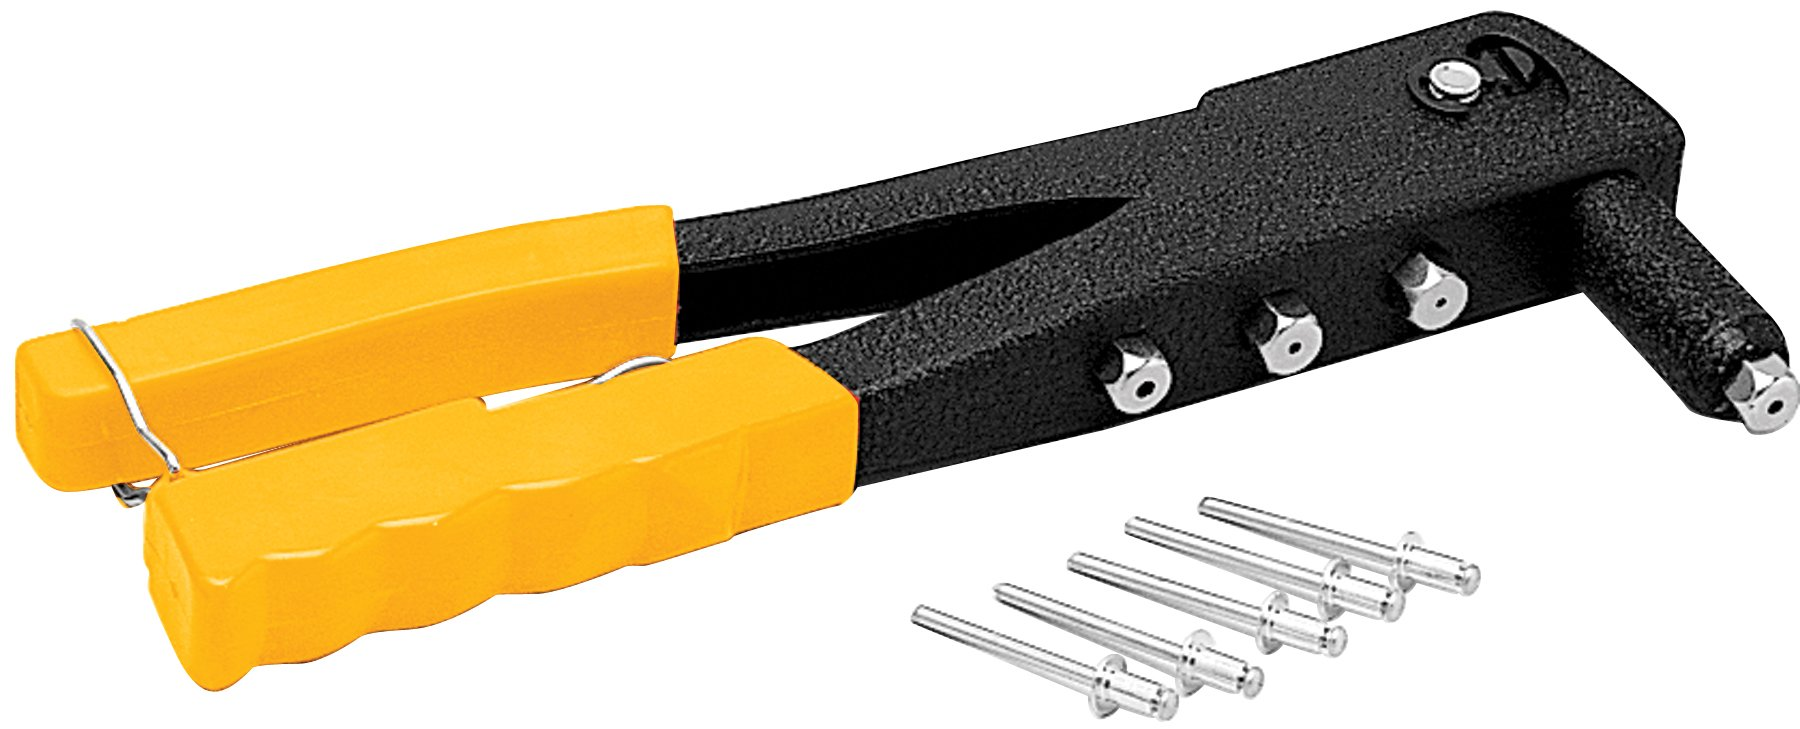 Performance Tool W2017C Hand Riveter Set, 67-Piece by Performance Tool (Image #1)